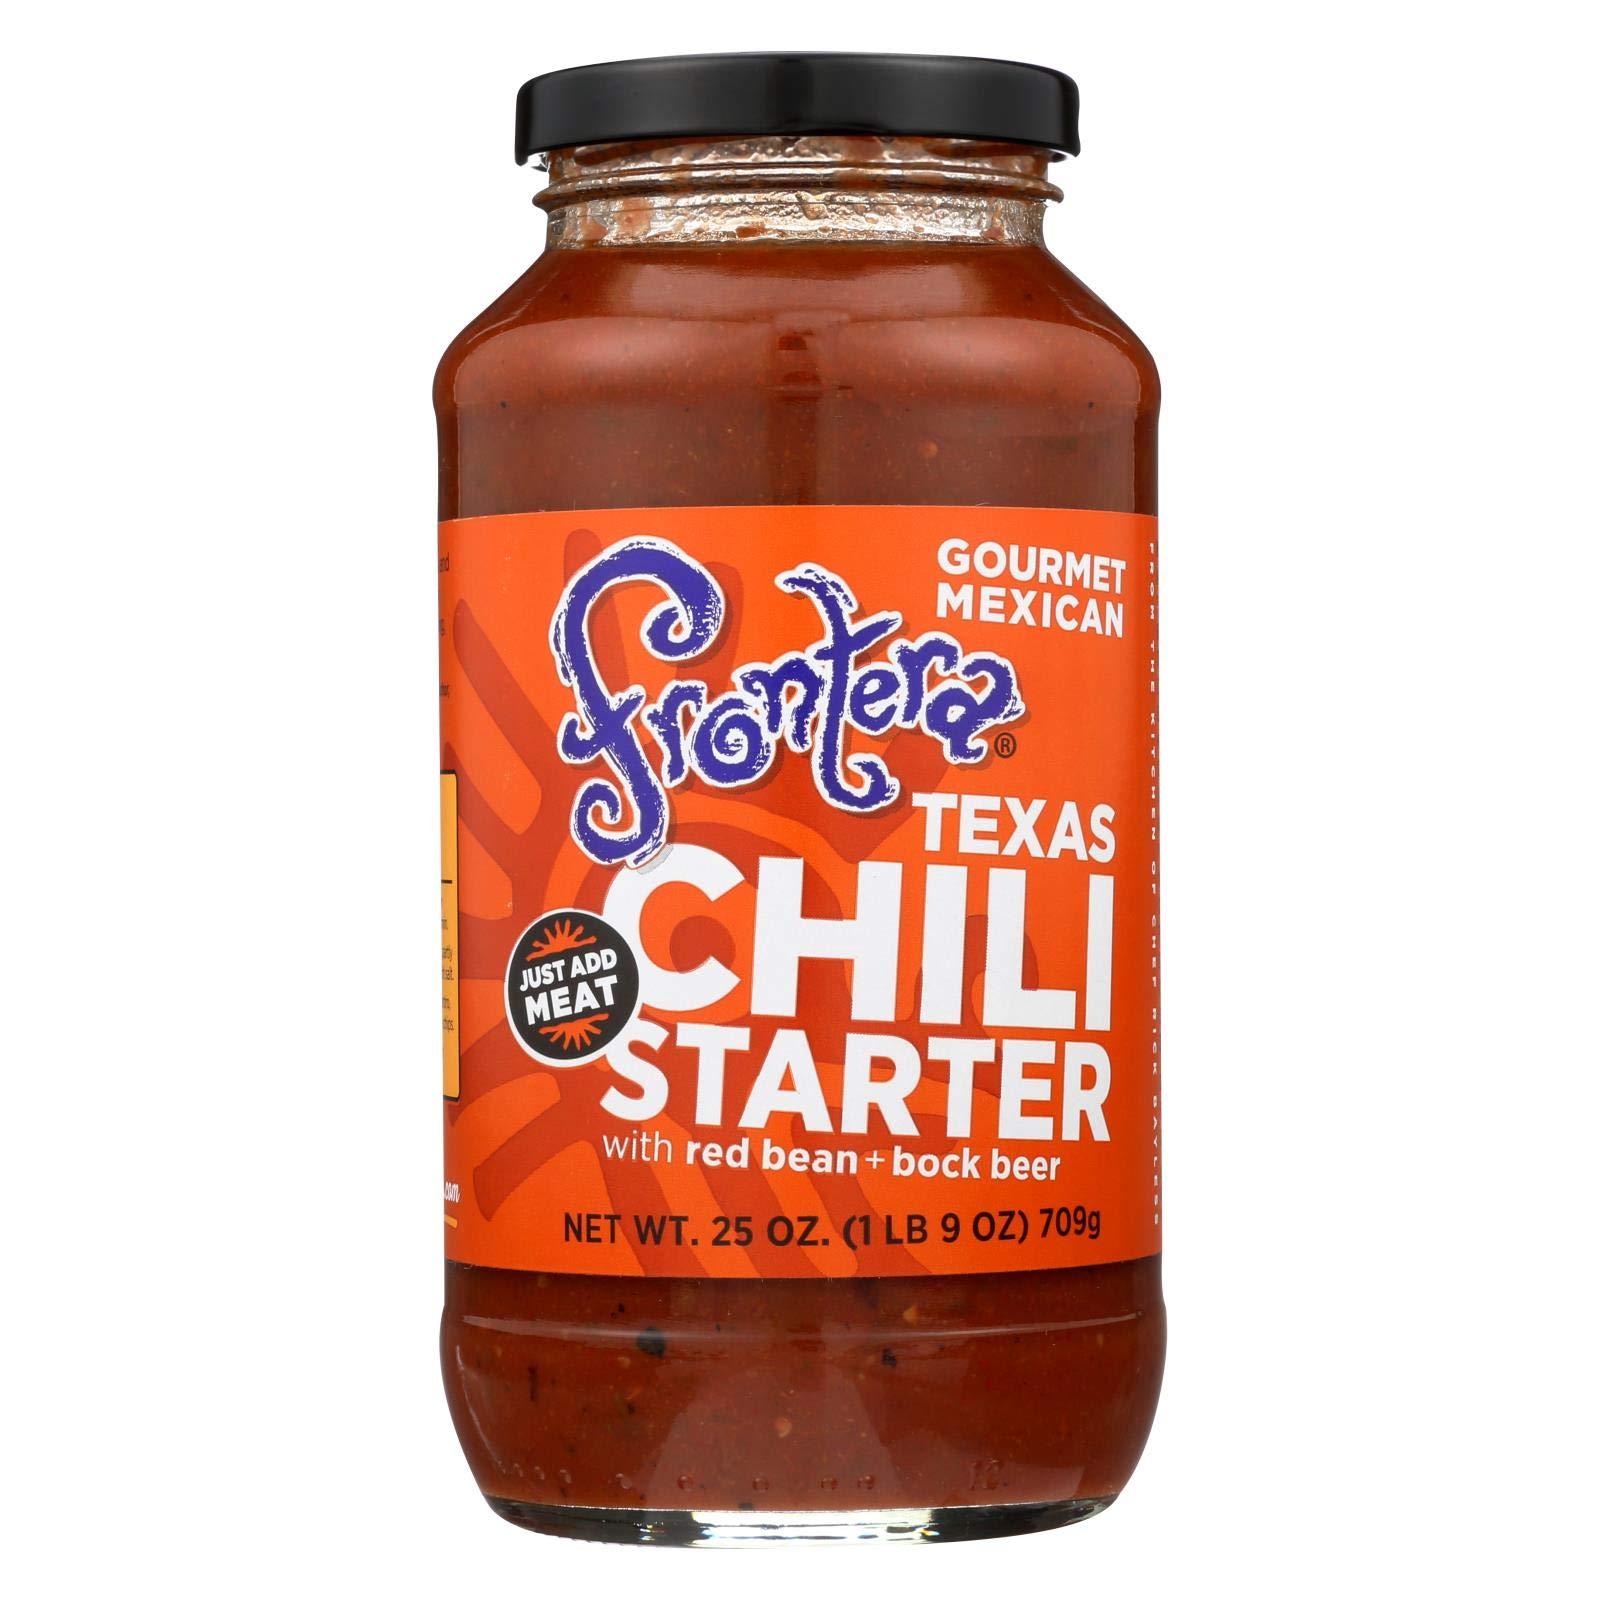 Frontera All Natural Texas Chili Starter, 24 Ounce (Pack of 6) by Frontera Foods